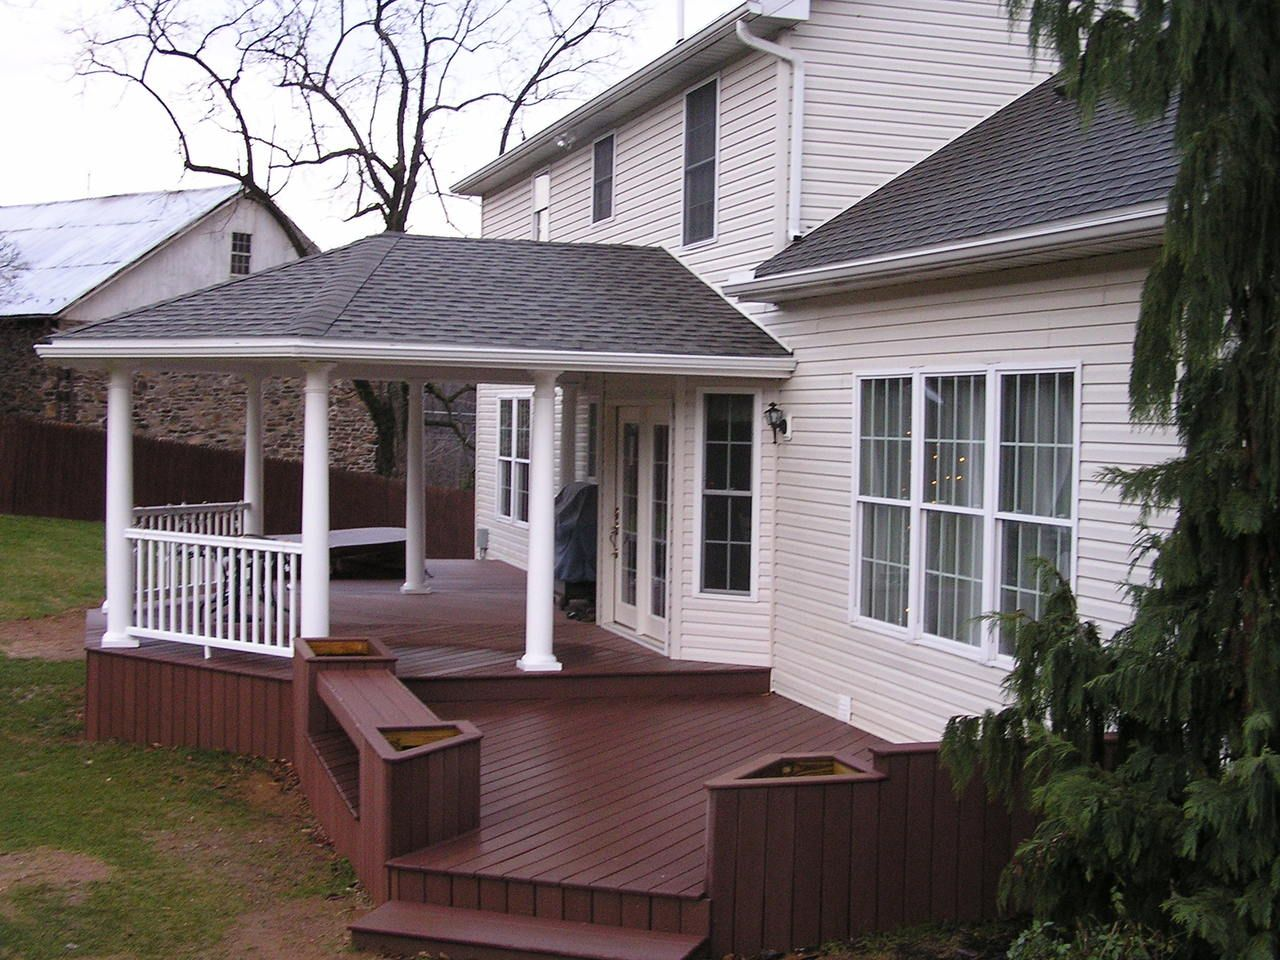 Getting Roof Extensions In West Portland Oregon Building A Deck Decks And Porches Deck Building Cost